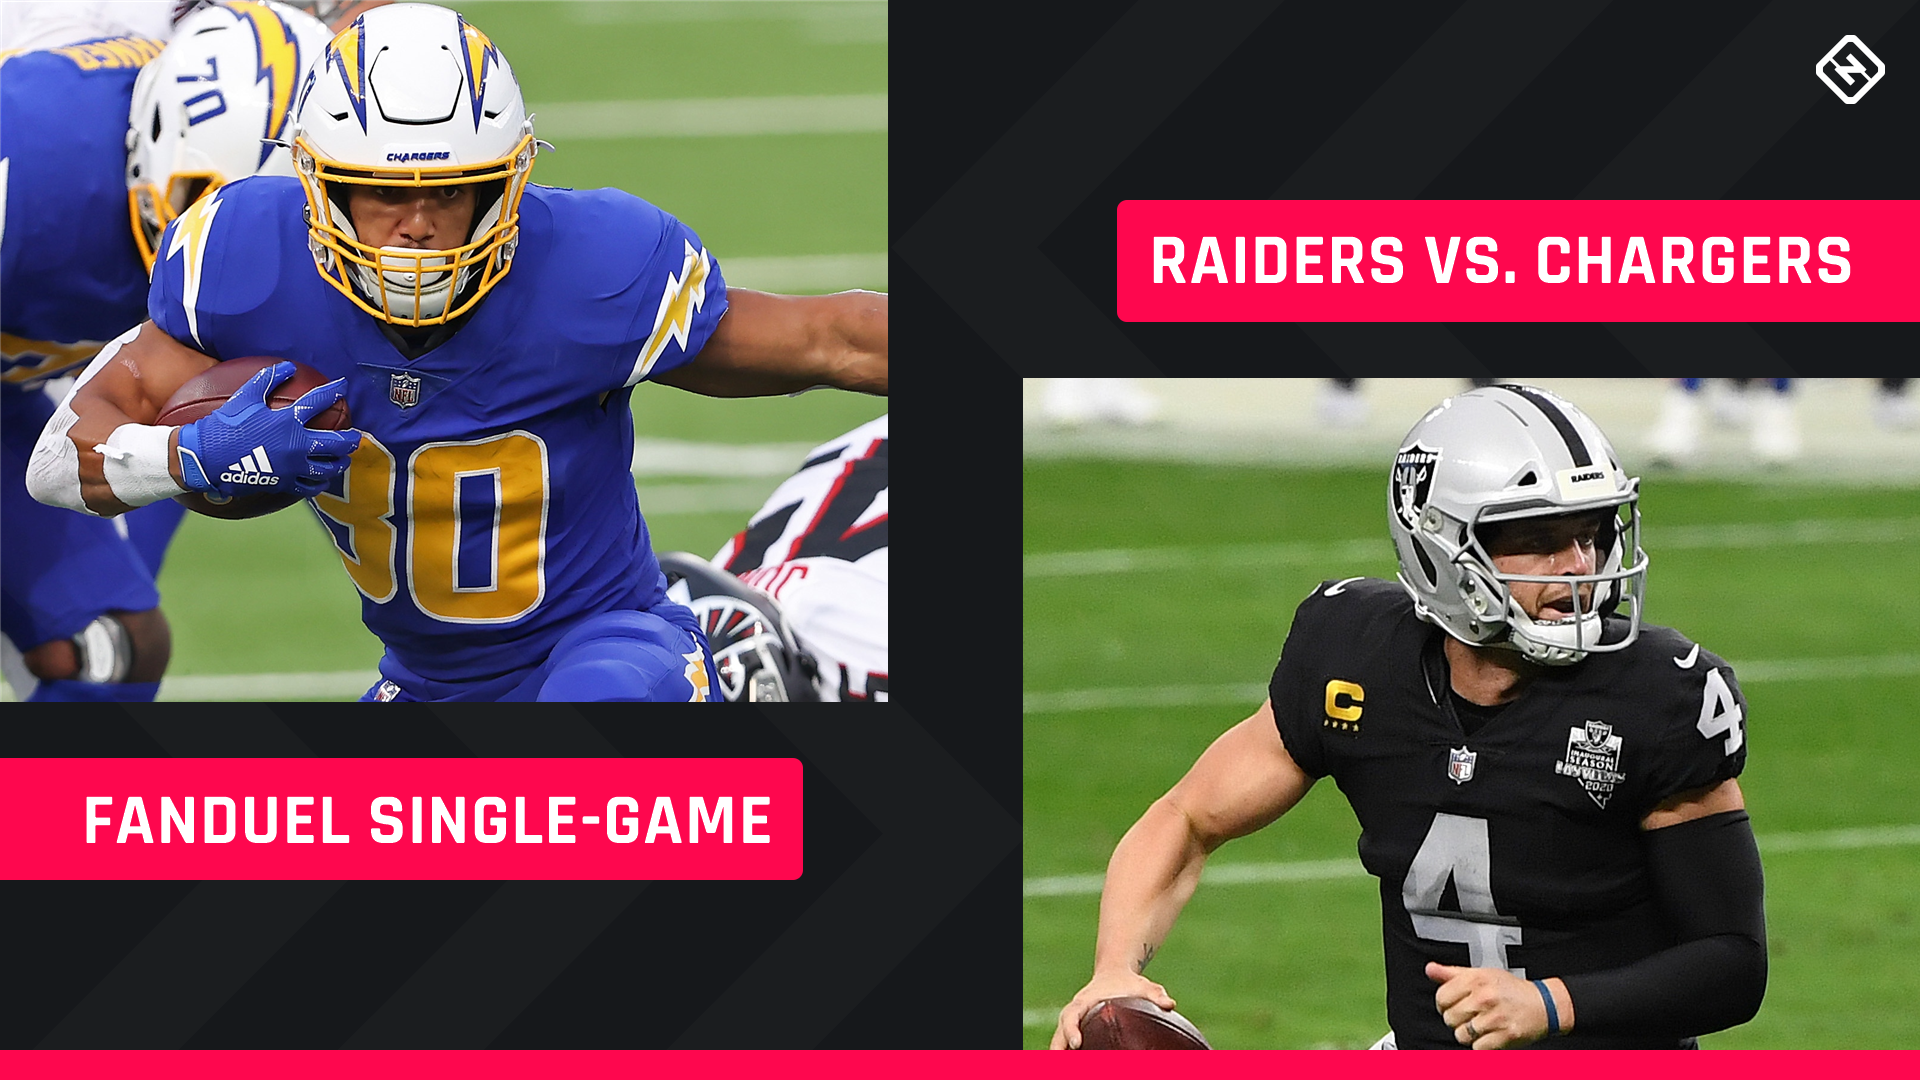 Thursday Night Football FanDuel Picks: NFL DFS lineup advice for Week 15 Chargers-Raiders single-game tournaments